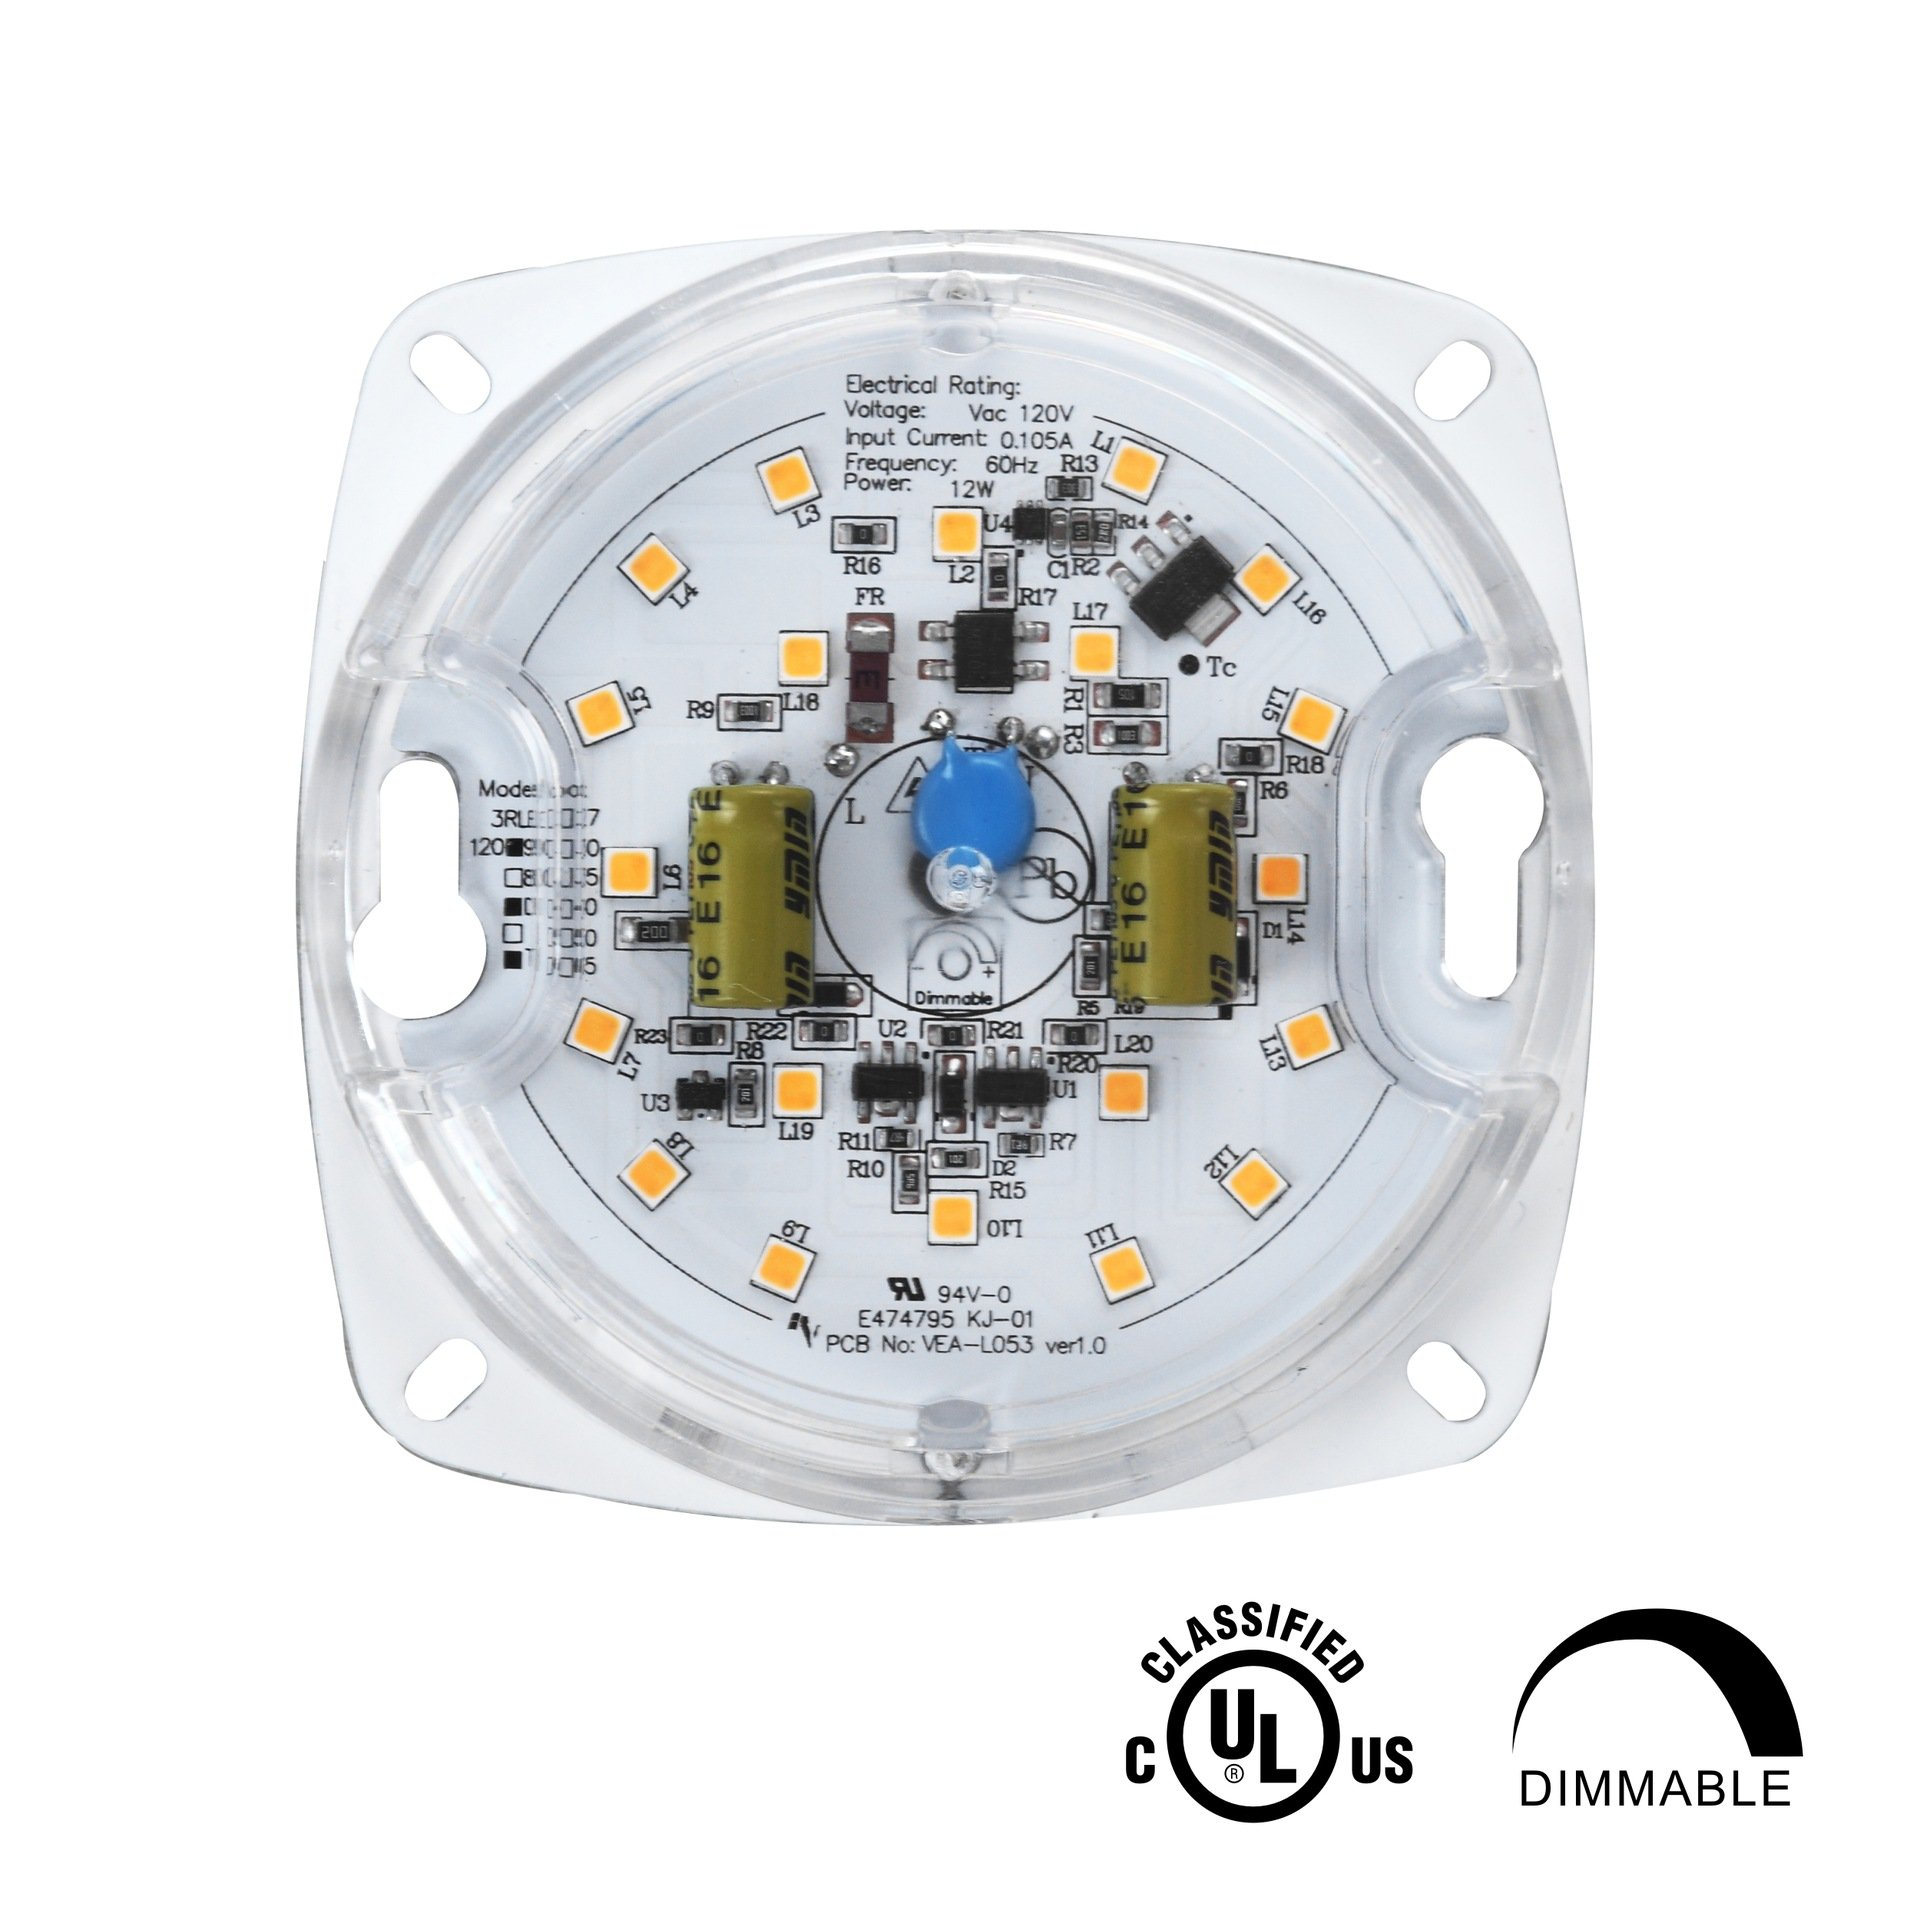 Best Rated In Close To Ceiling Light Fixtures Helpful Customer Fan Wiring New Construction2setsswitchesfanlight3jpg Silverlite 310w5000k850lm120vcri80dimmable Led